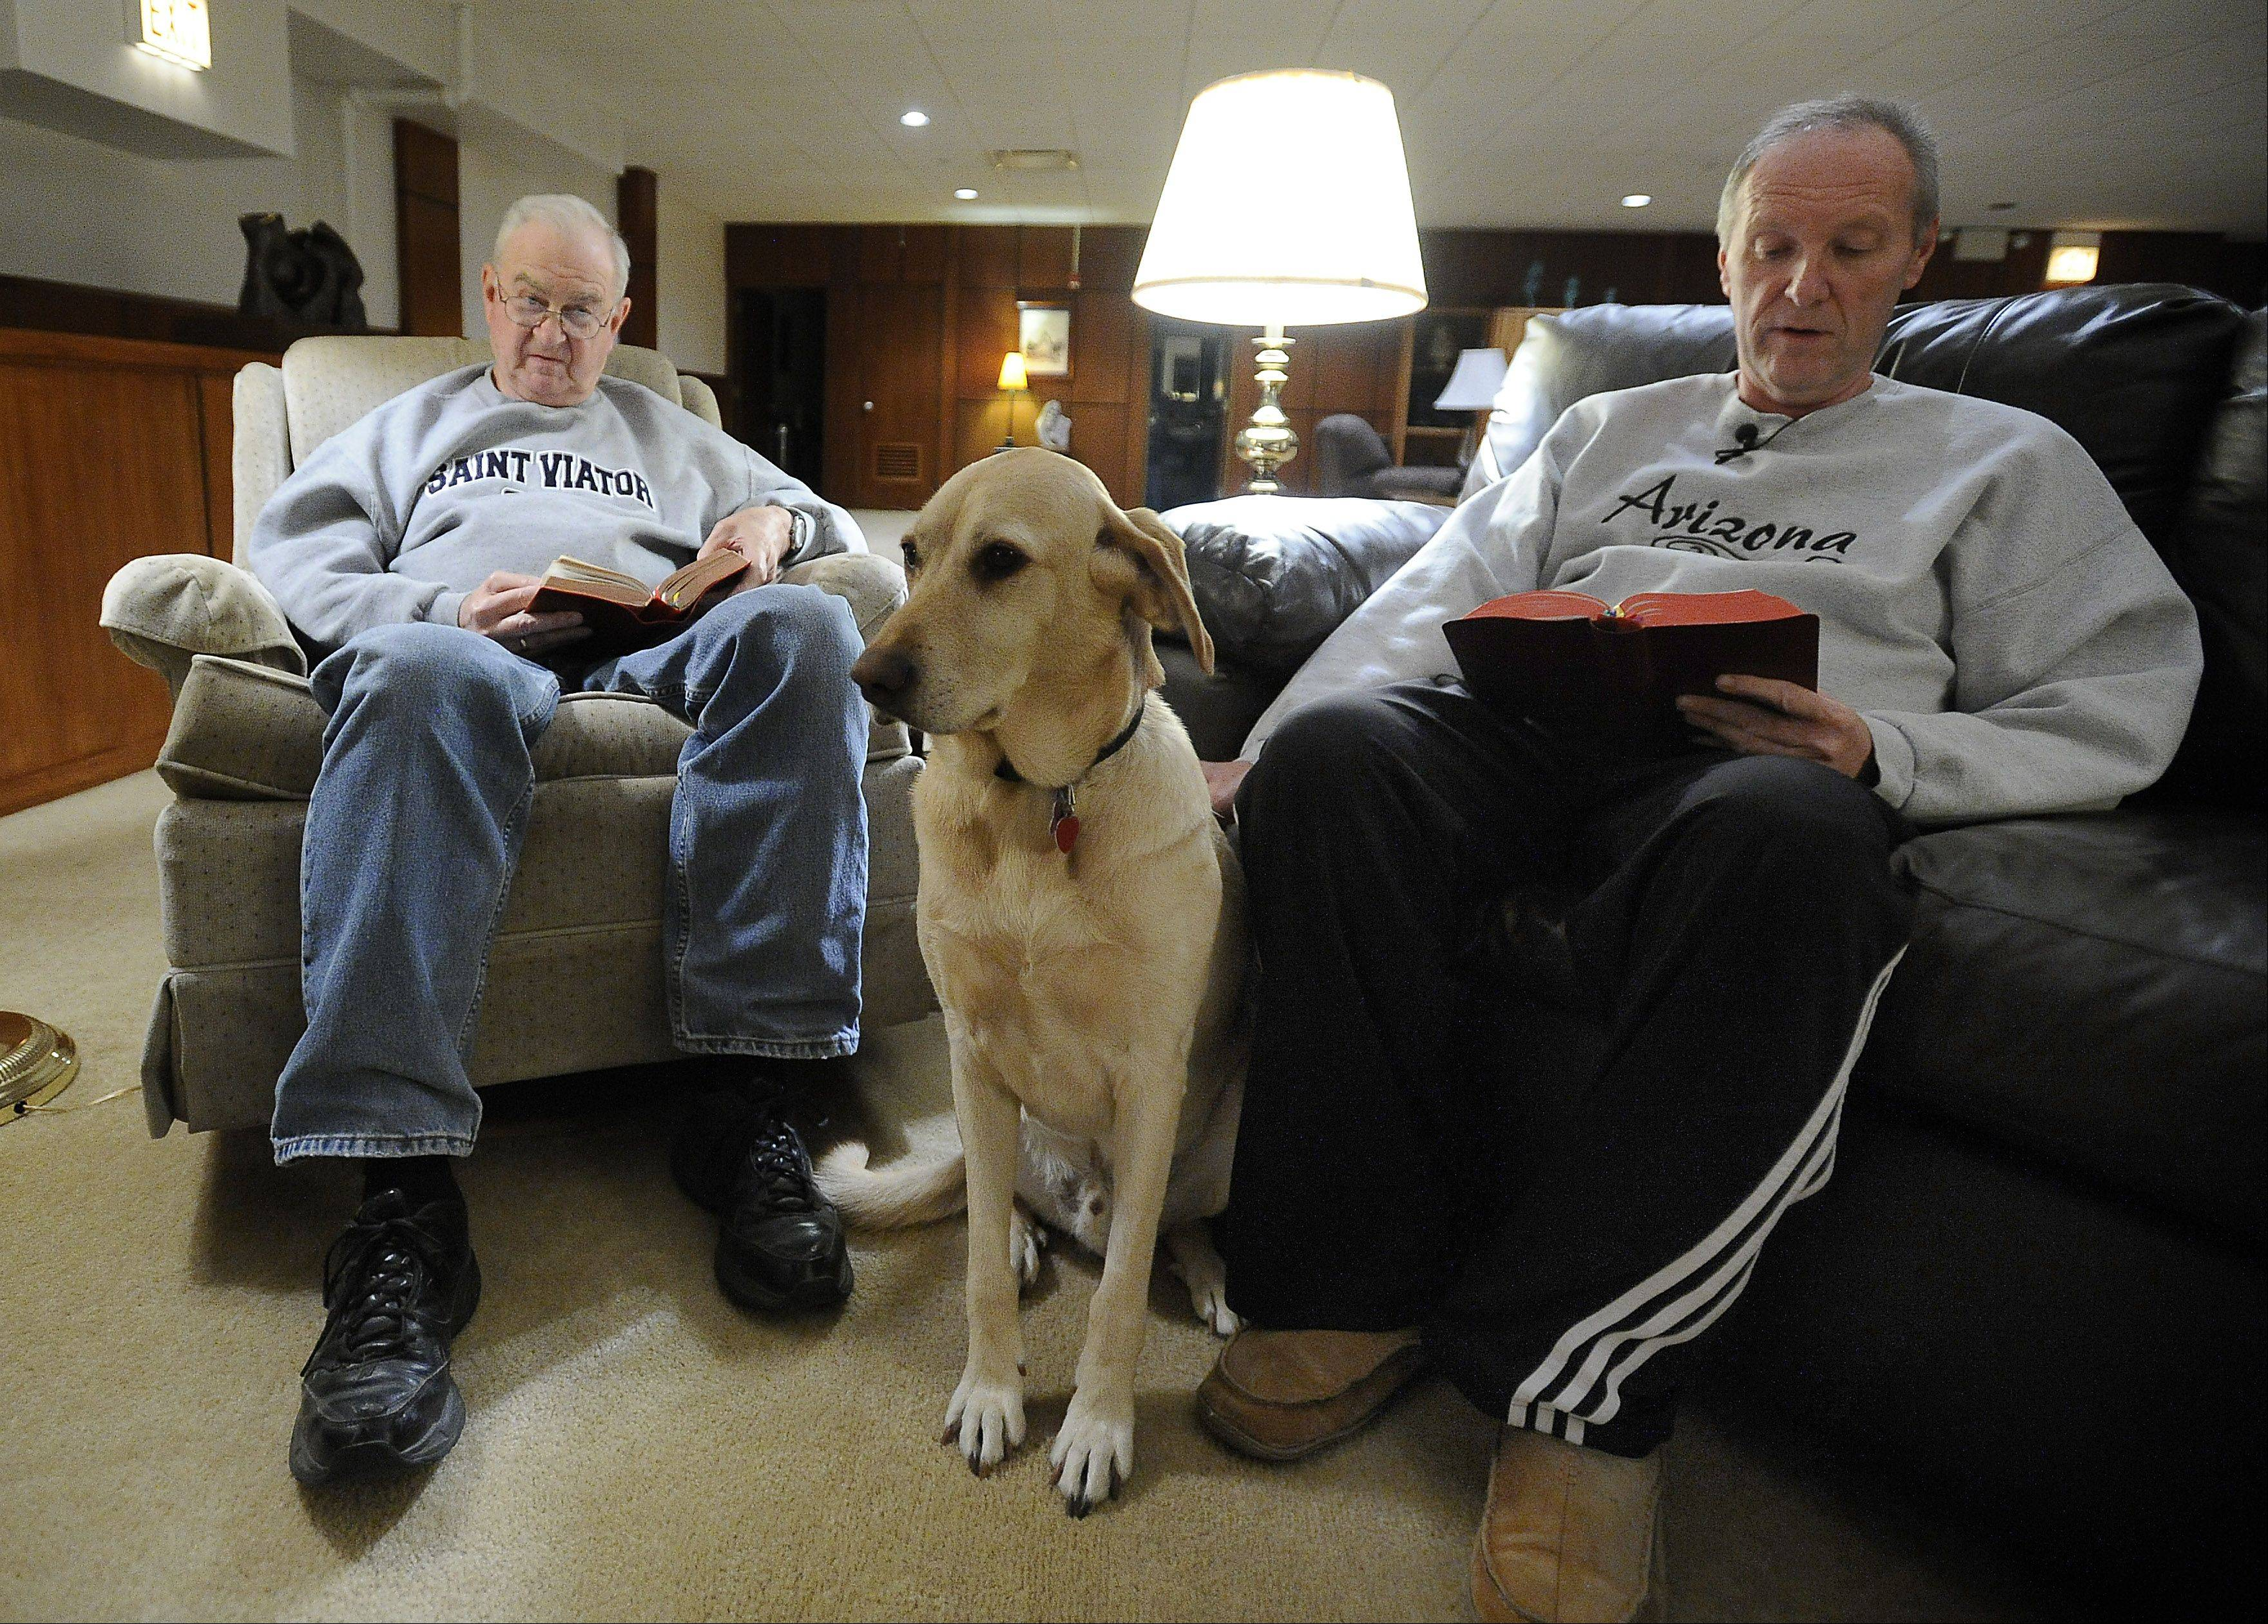 Father John Van Wiel and Brother Rob Robertson say evening prayers in their living room at St. Viator High School while Archie sits quietly by, knowing he will get a treat when they are finished.